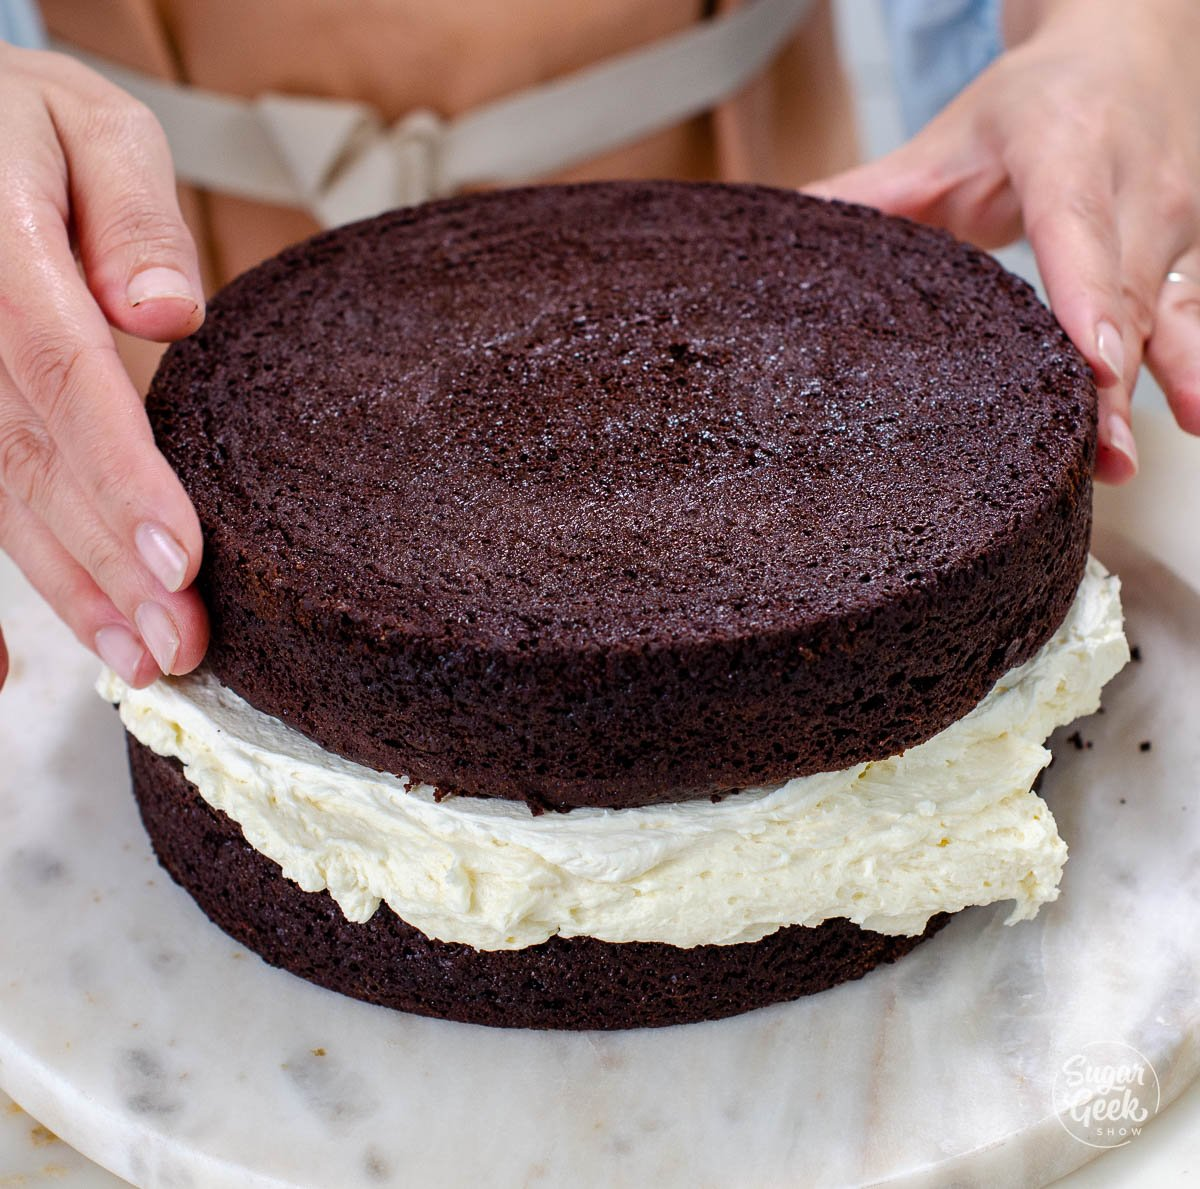 adding the second layer of cake to the frosting layer